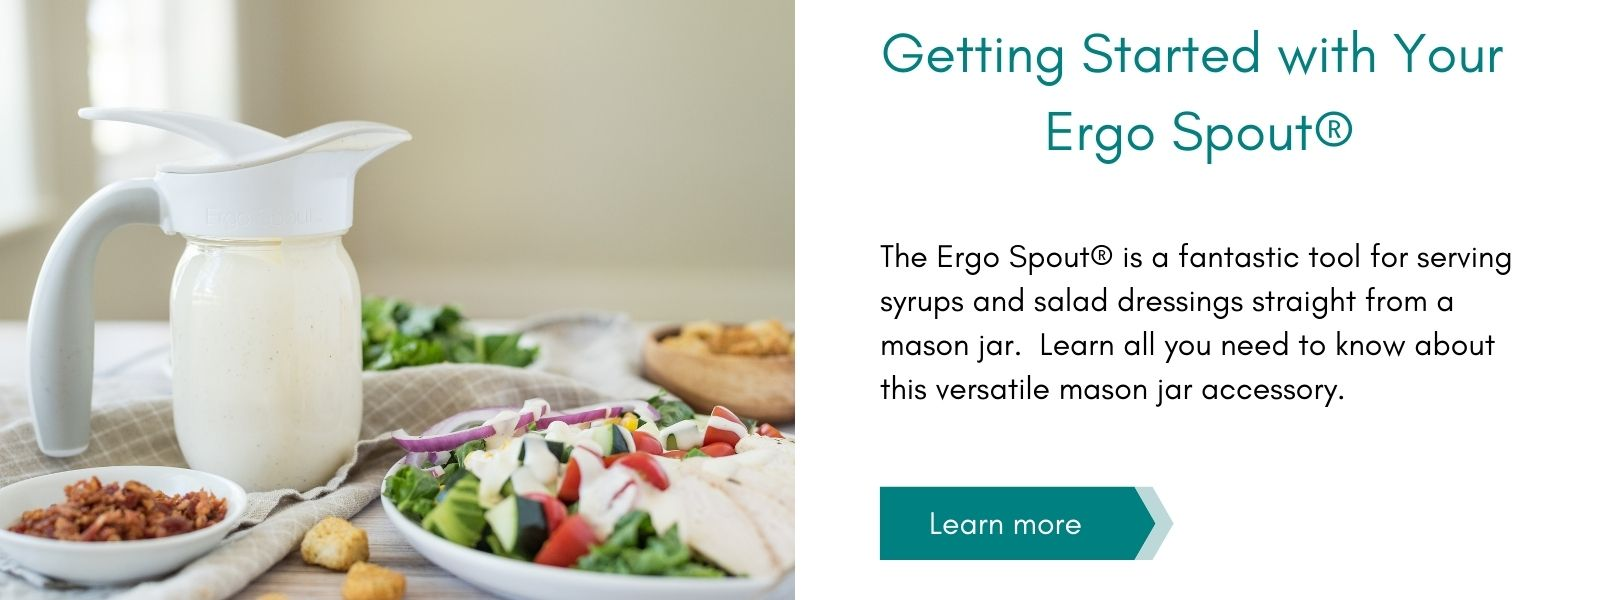 Getting Started with your Ergo Spout